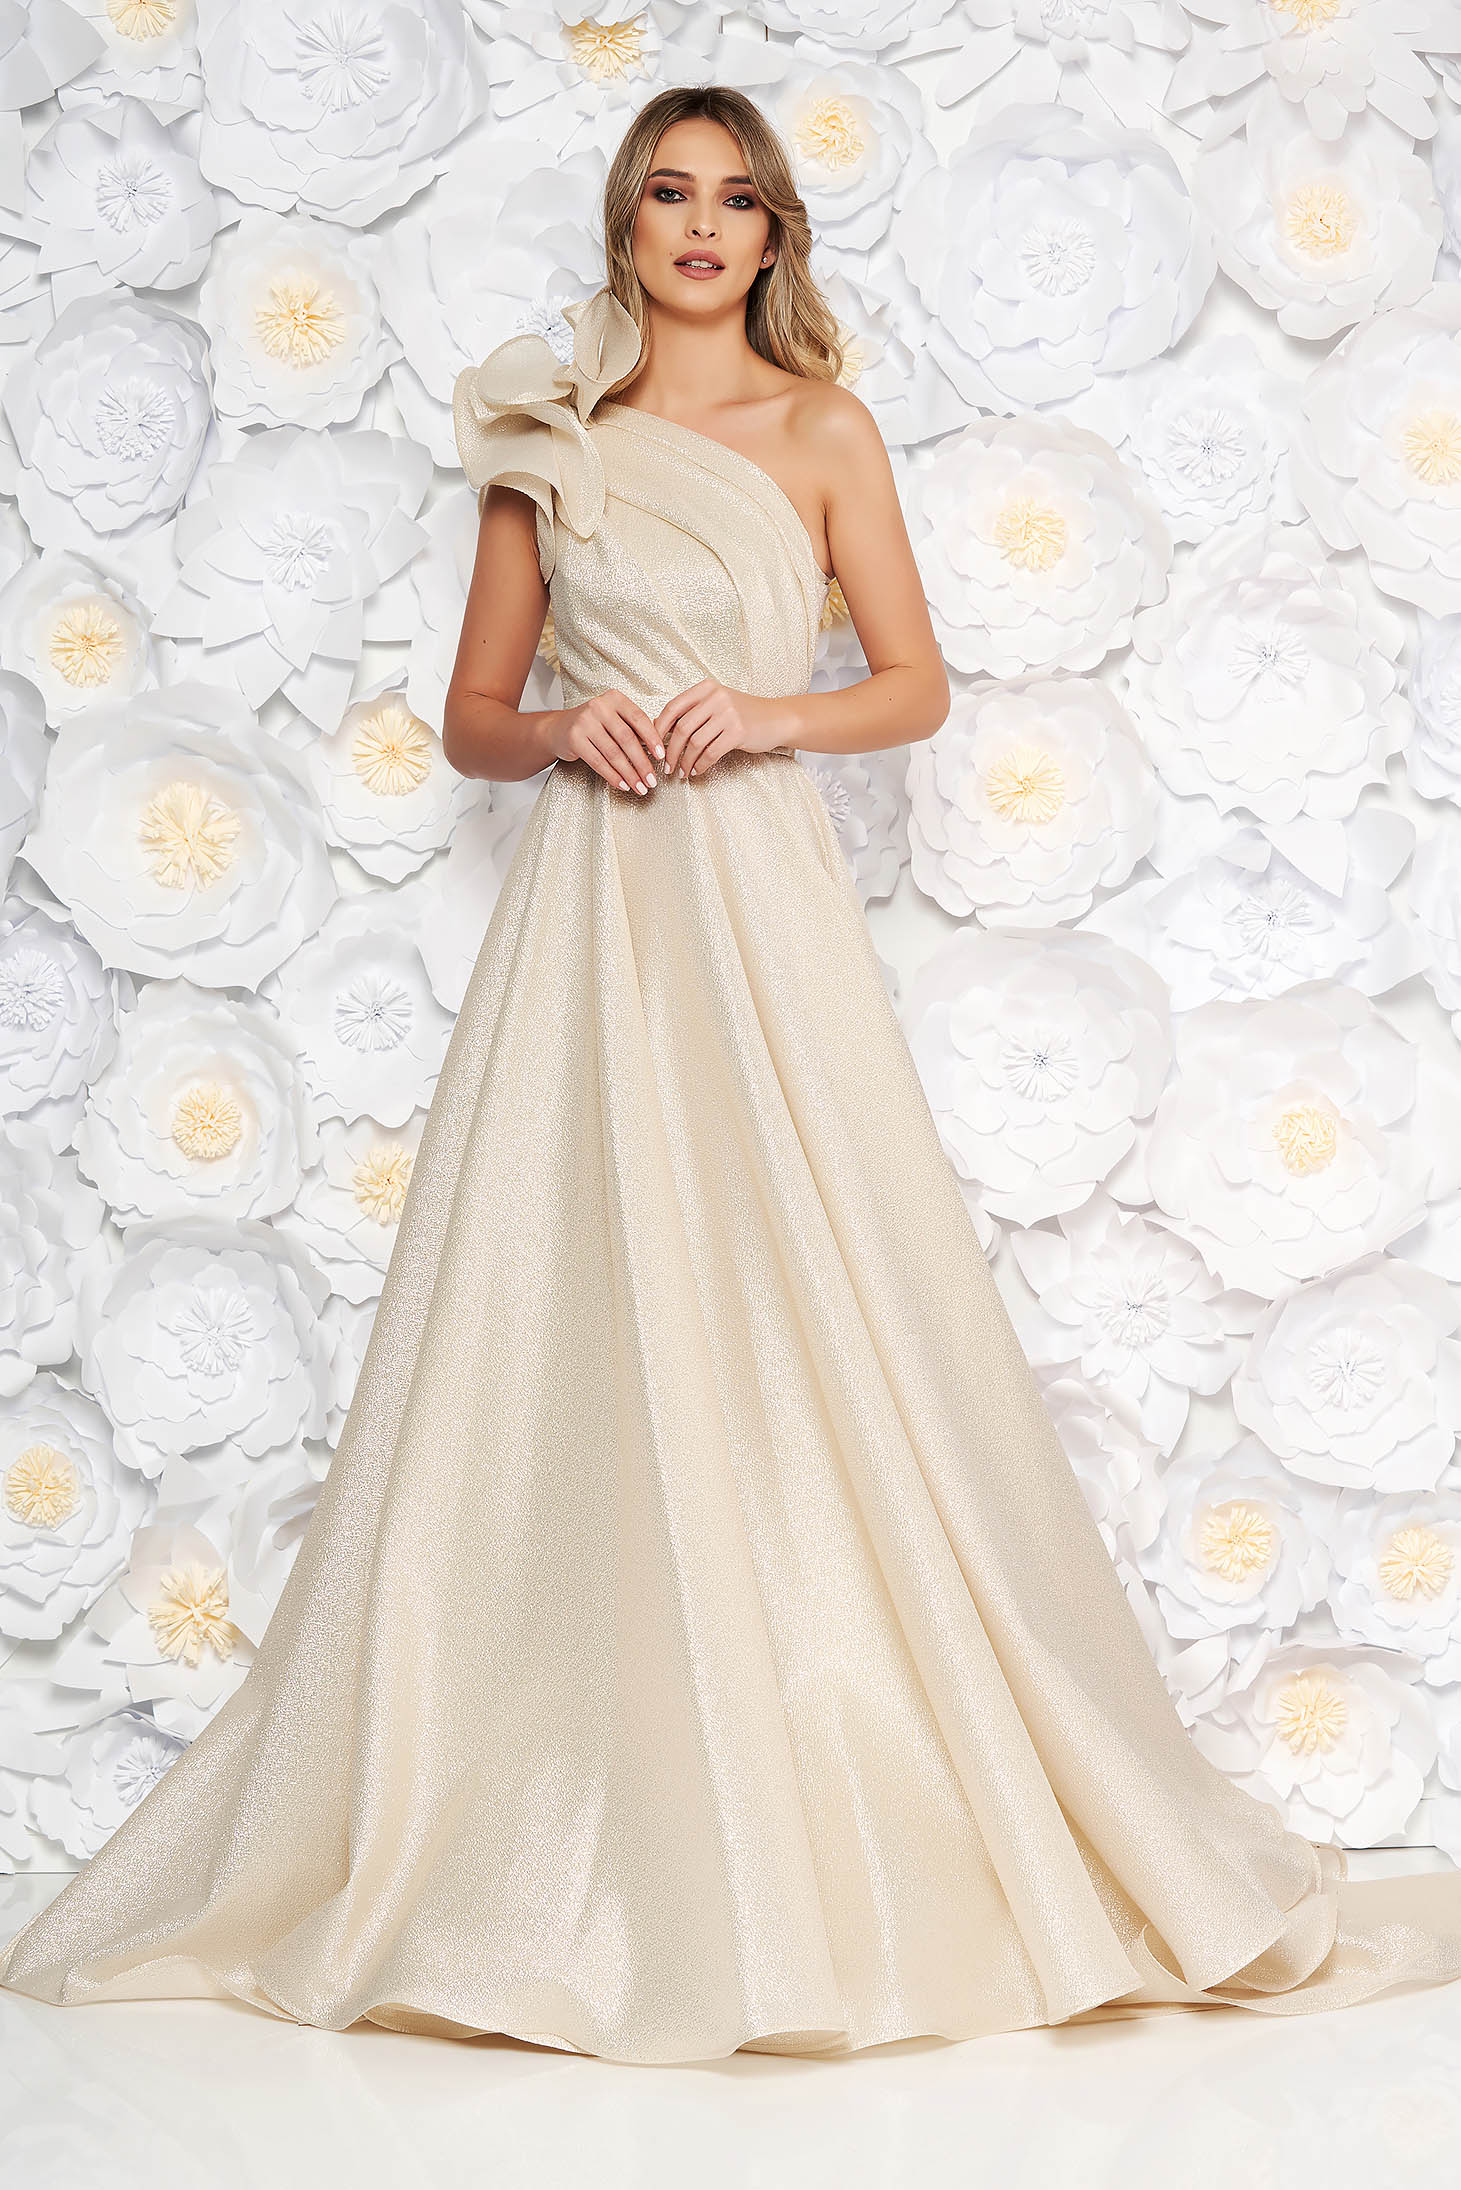 Ana Radu gold luxurious cloche dress nonelastic fabric with metallic aspect with inside lining with ruffle details